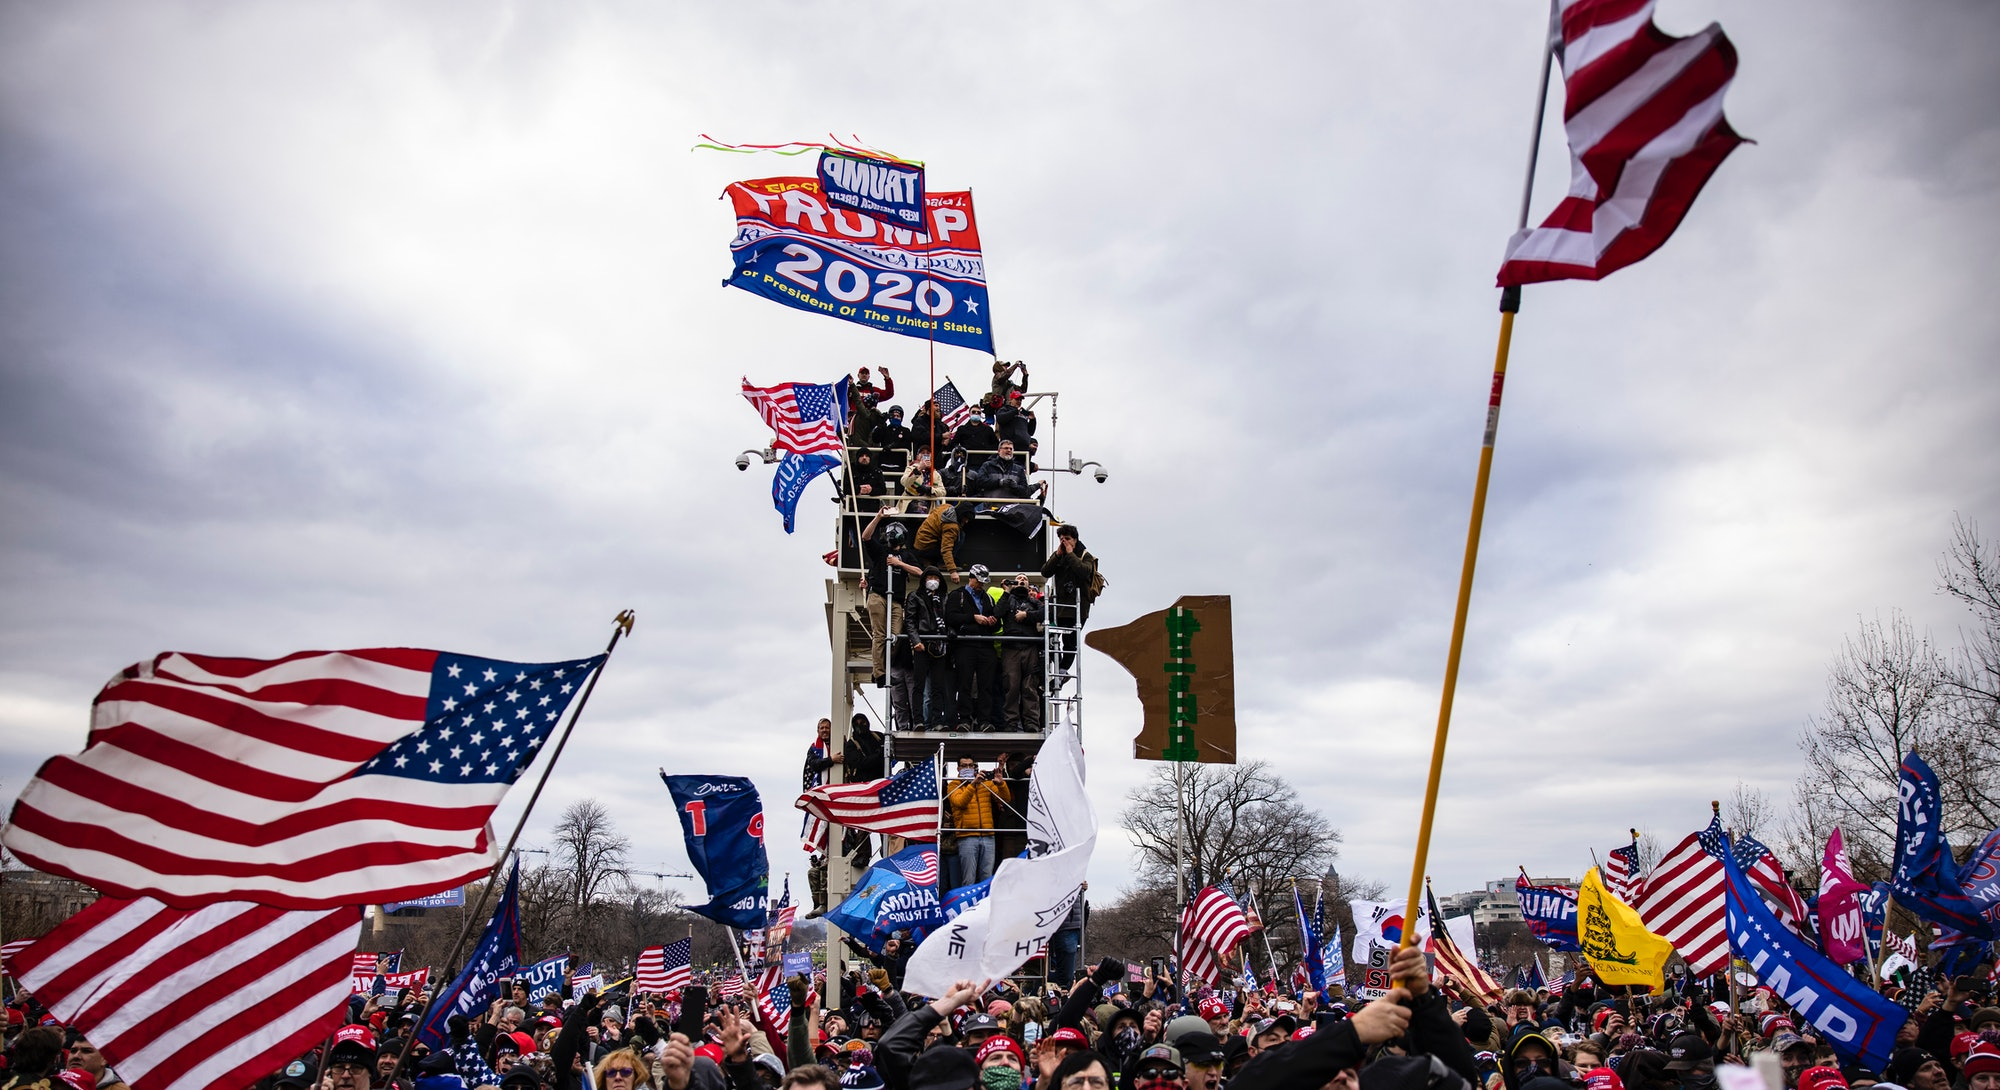 Rioters hold up a trump 2020 flag. Photos of Wednesday Jan 6 Capitol Building insurrection.